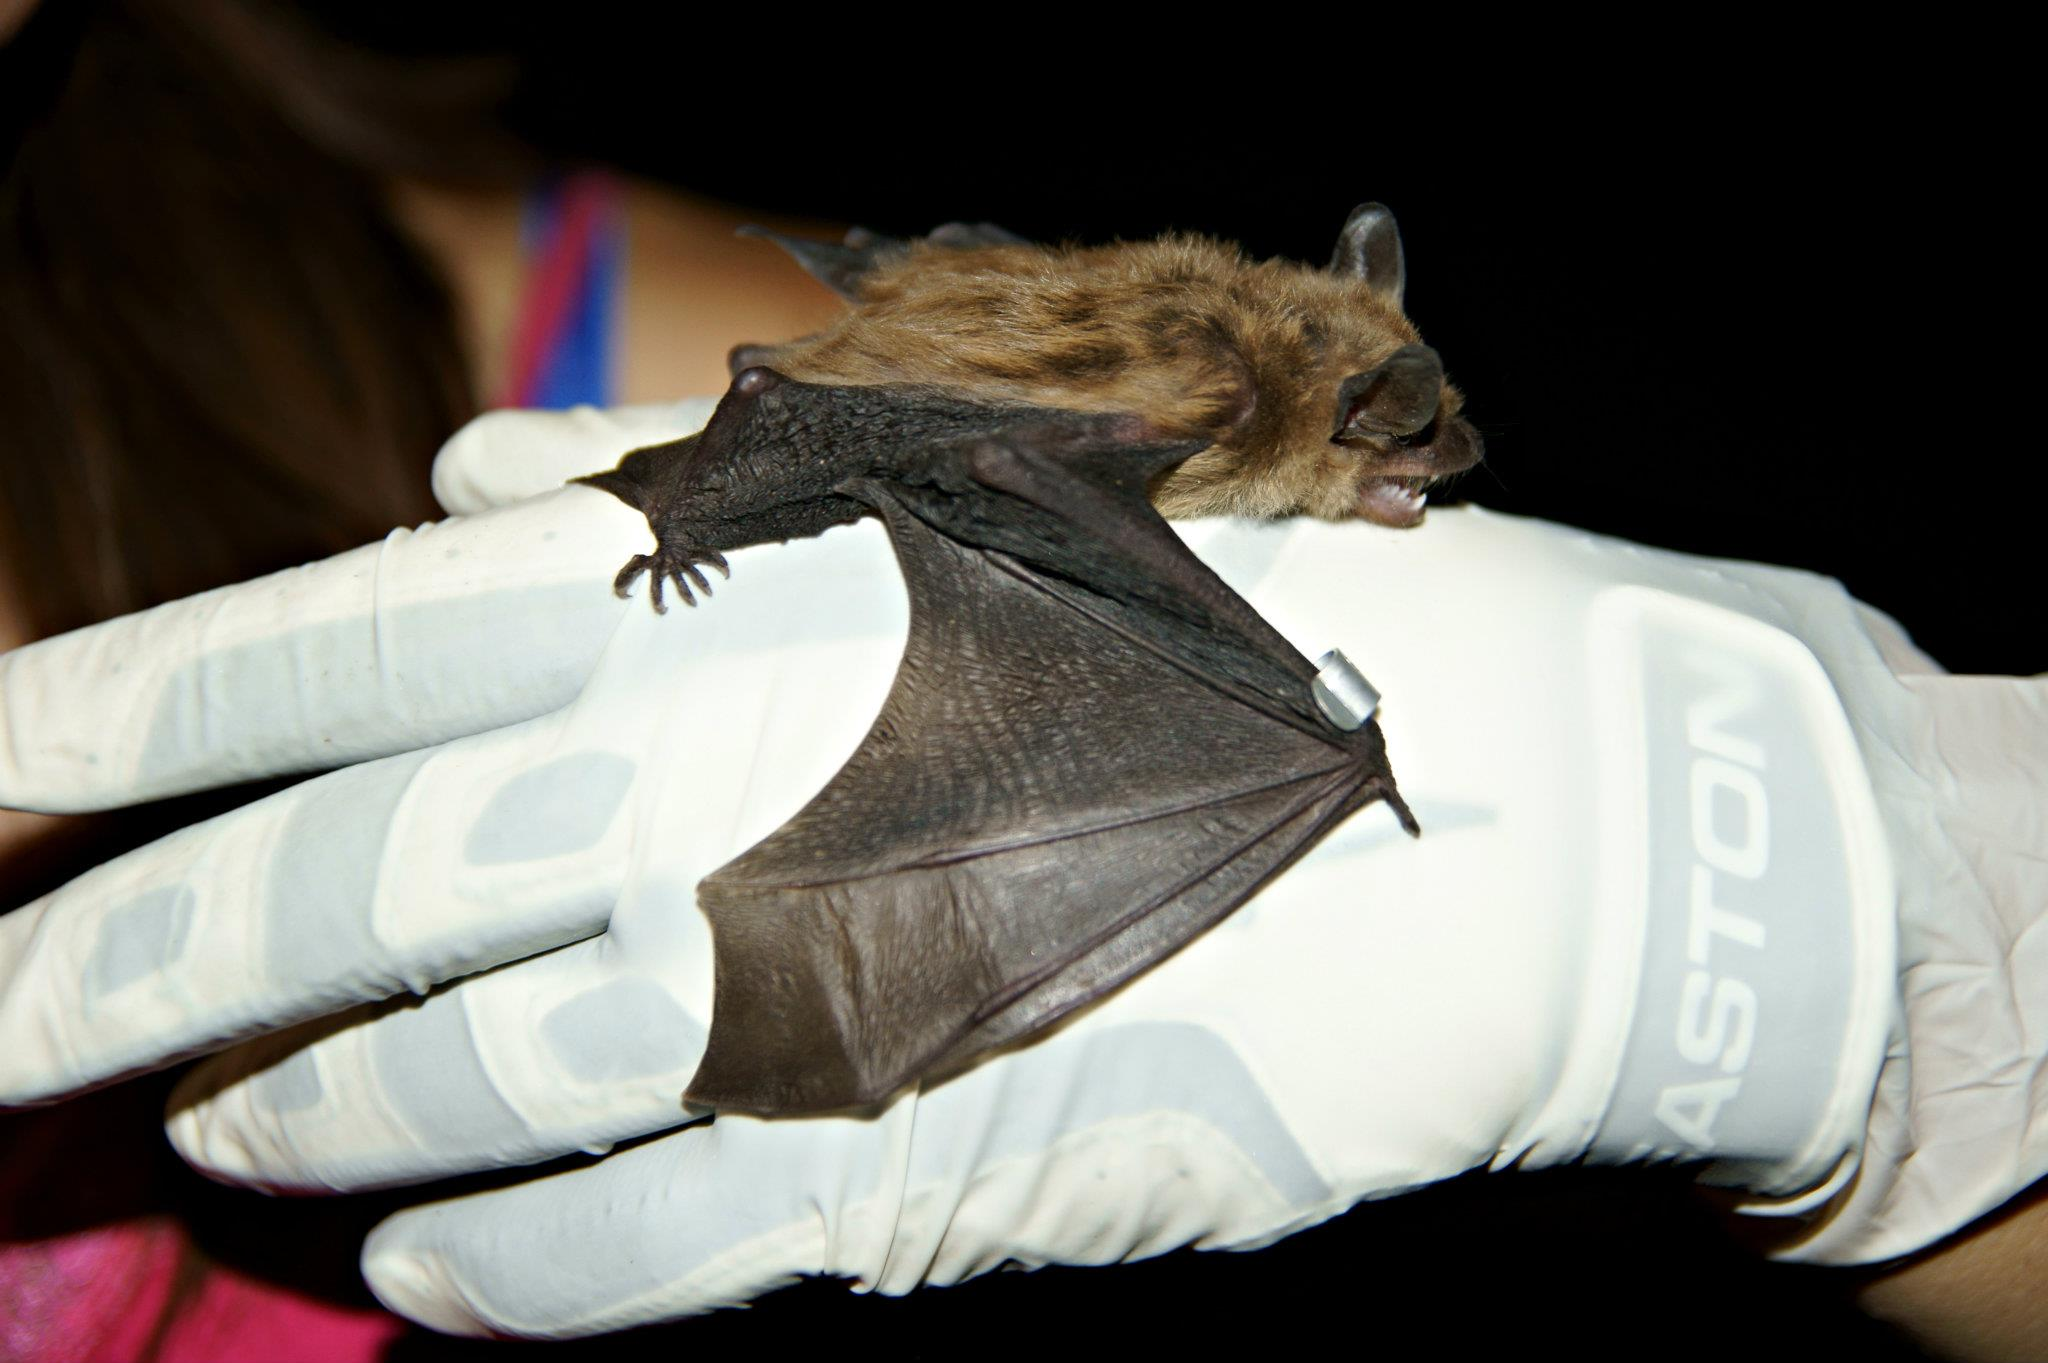 A healthy big brown bat, one of the species known to be affected by white-nose syndrome. Image credit: Amy Gondran